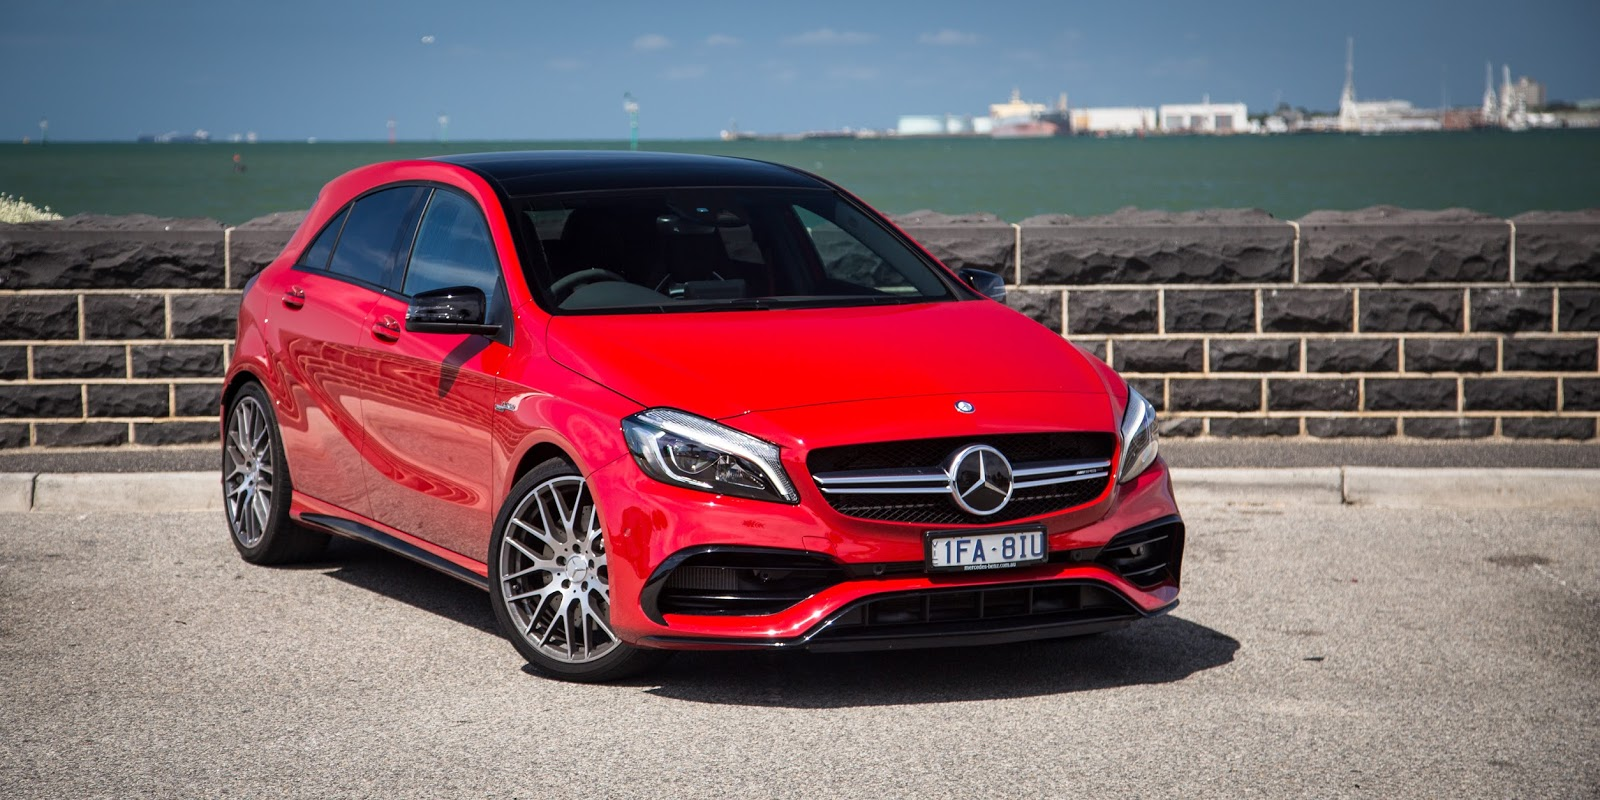 Mercedes AMG A45 4Matic 2016